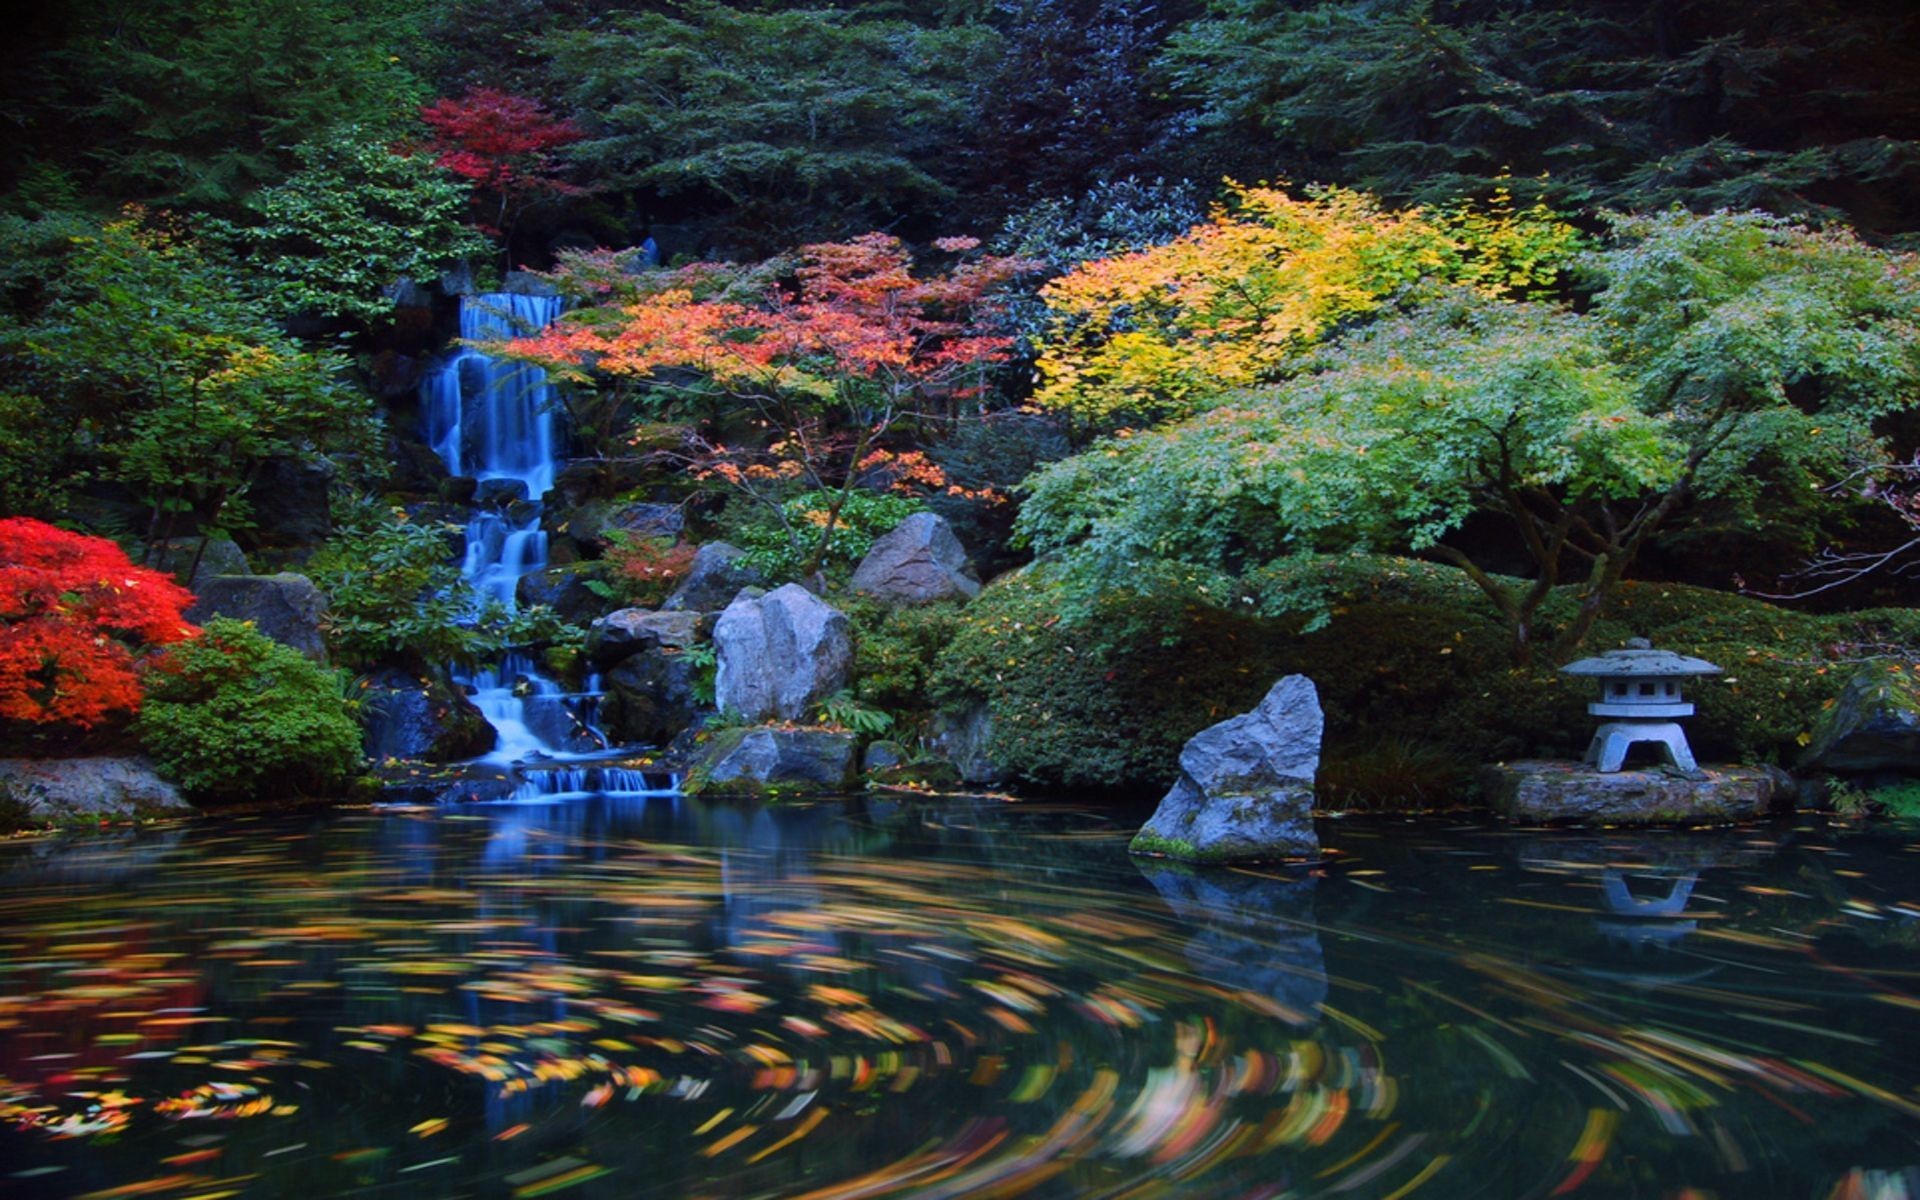 1920x1200 Japanese Garden Wallpapers   Wallpaper Cave